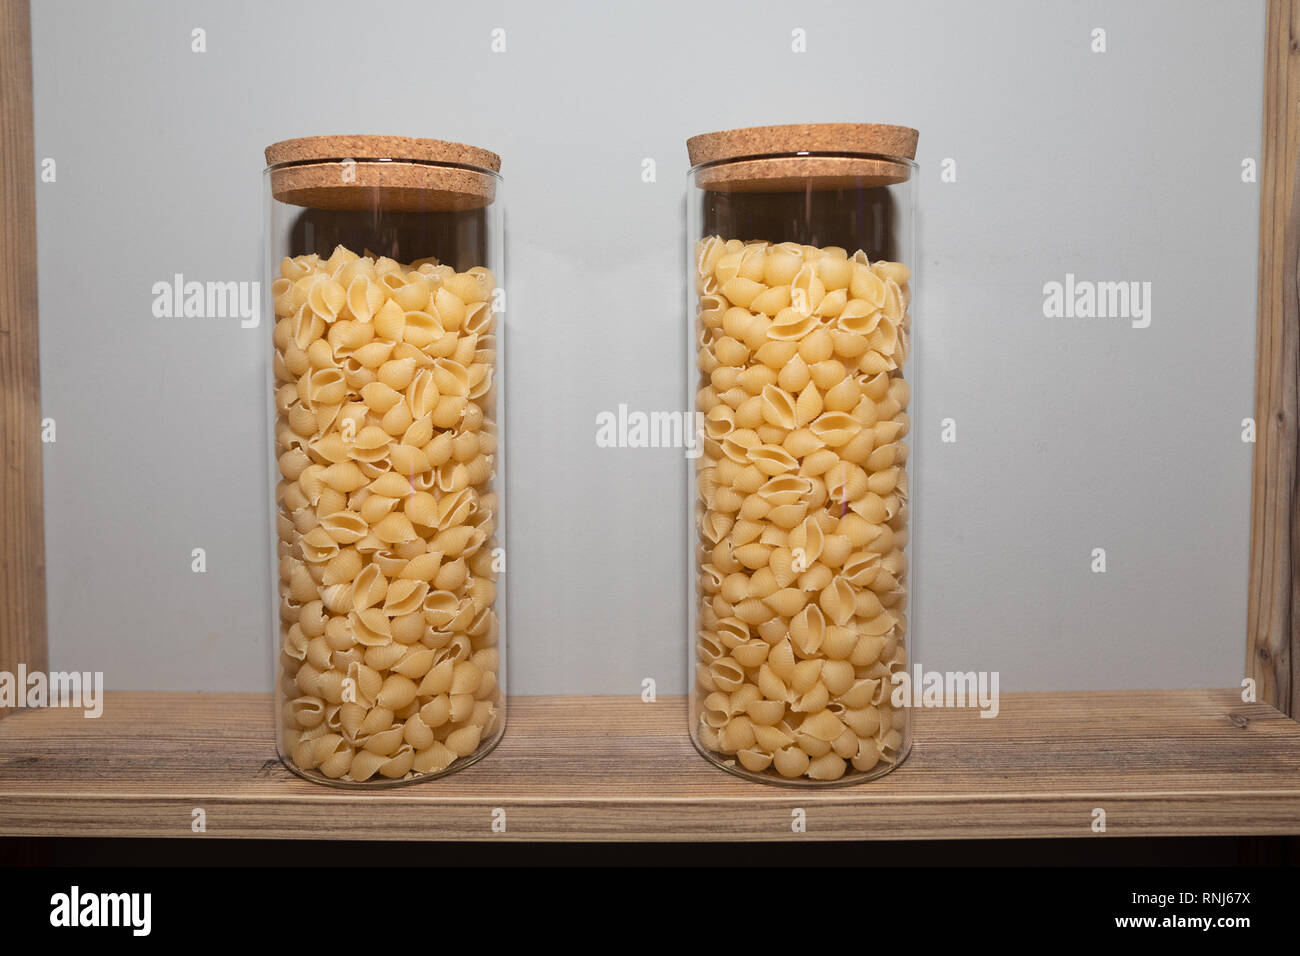 two transparent jars of pasta are on the shelf - Stock Image